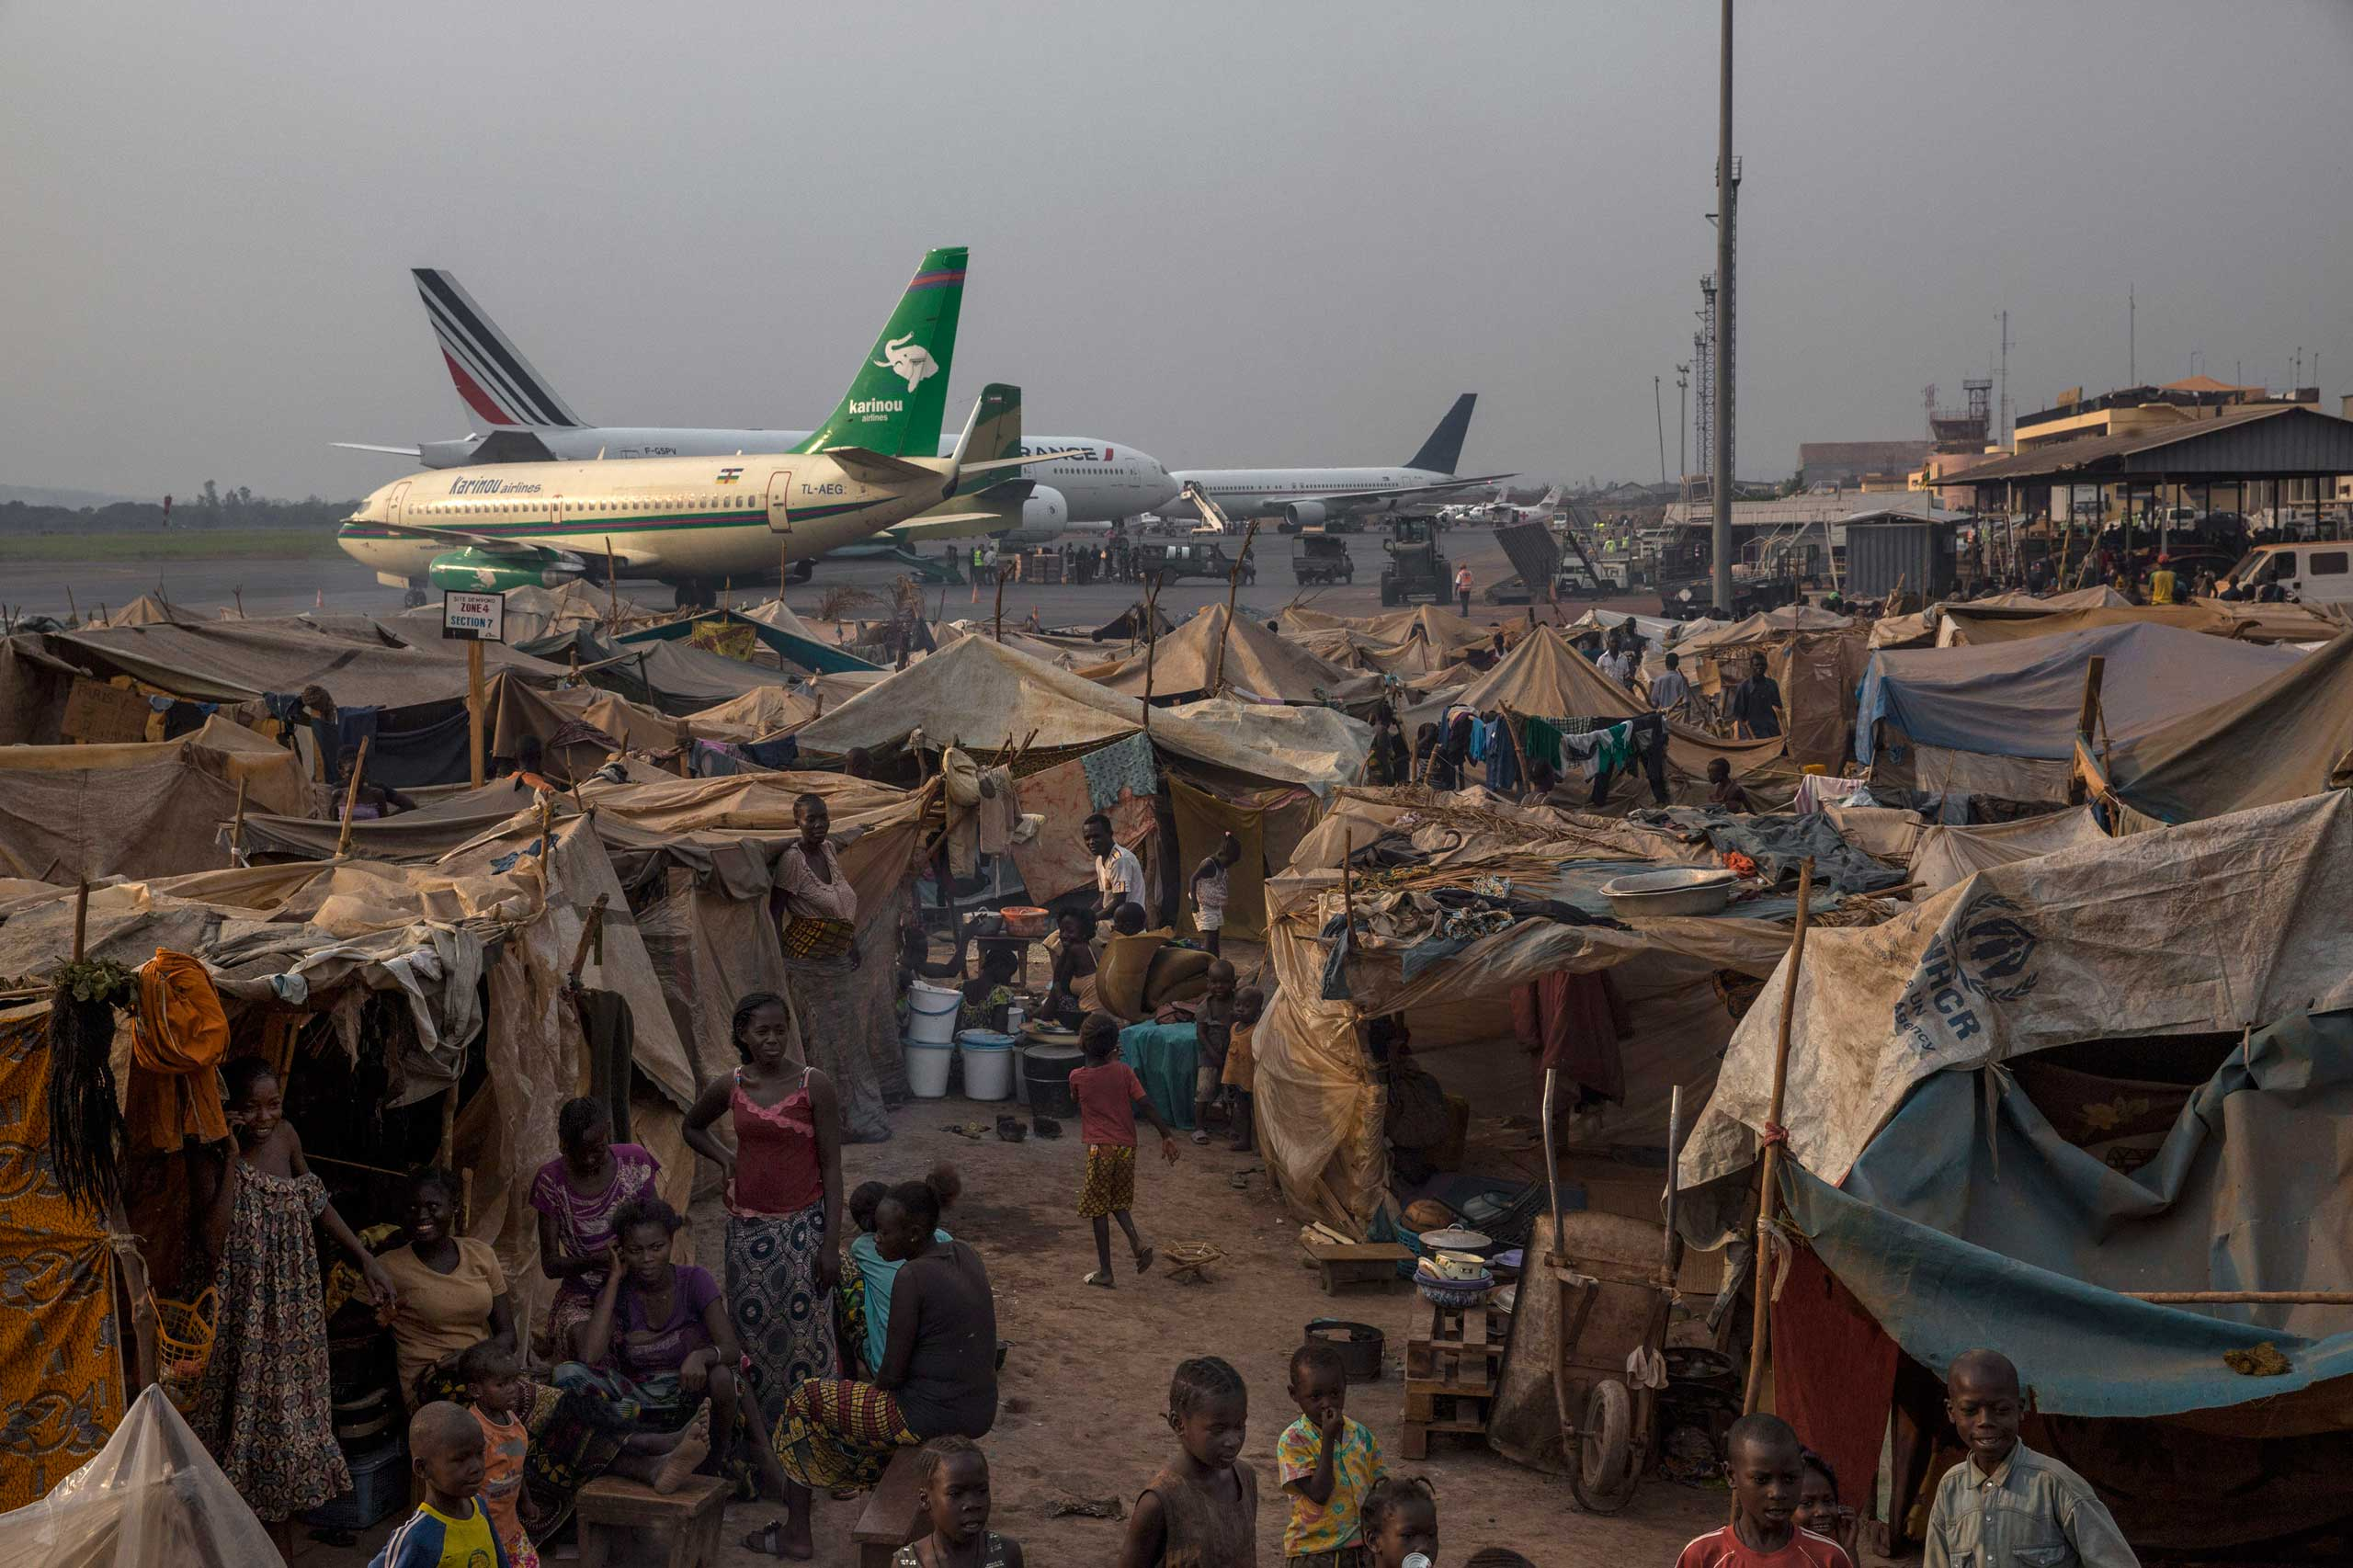 Jan. 28, 2014: The main displacement camp adjacent to Bangui's M'Poko International Airport, where thousands of people fled after the violence erupted in early December, now houses more than 100,000 people. The airport is secured by the French army.